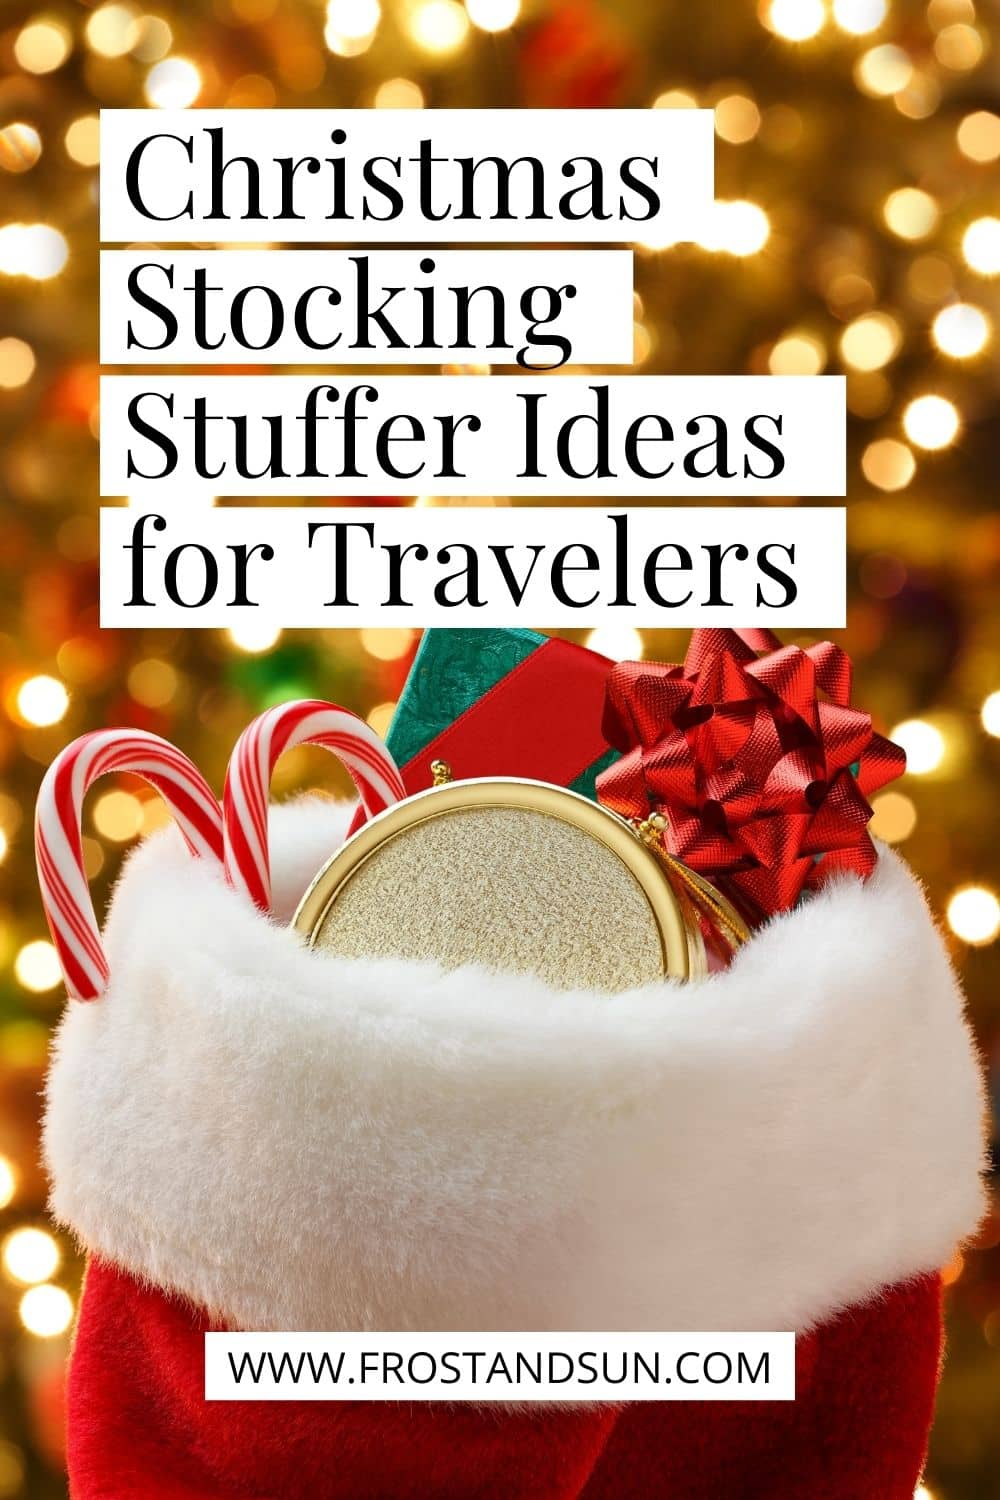 The Best Stocking Stuffers for Travelers